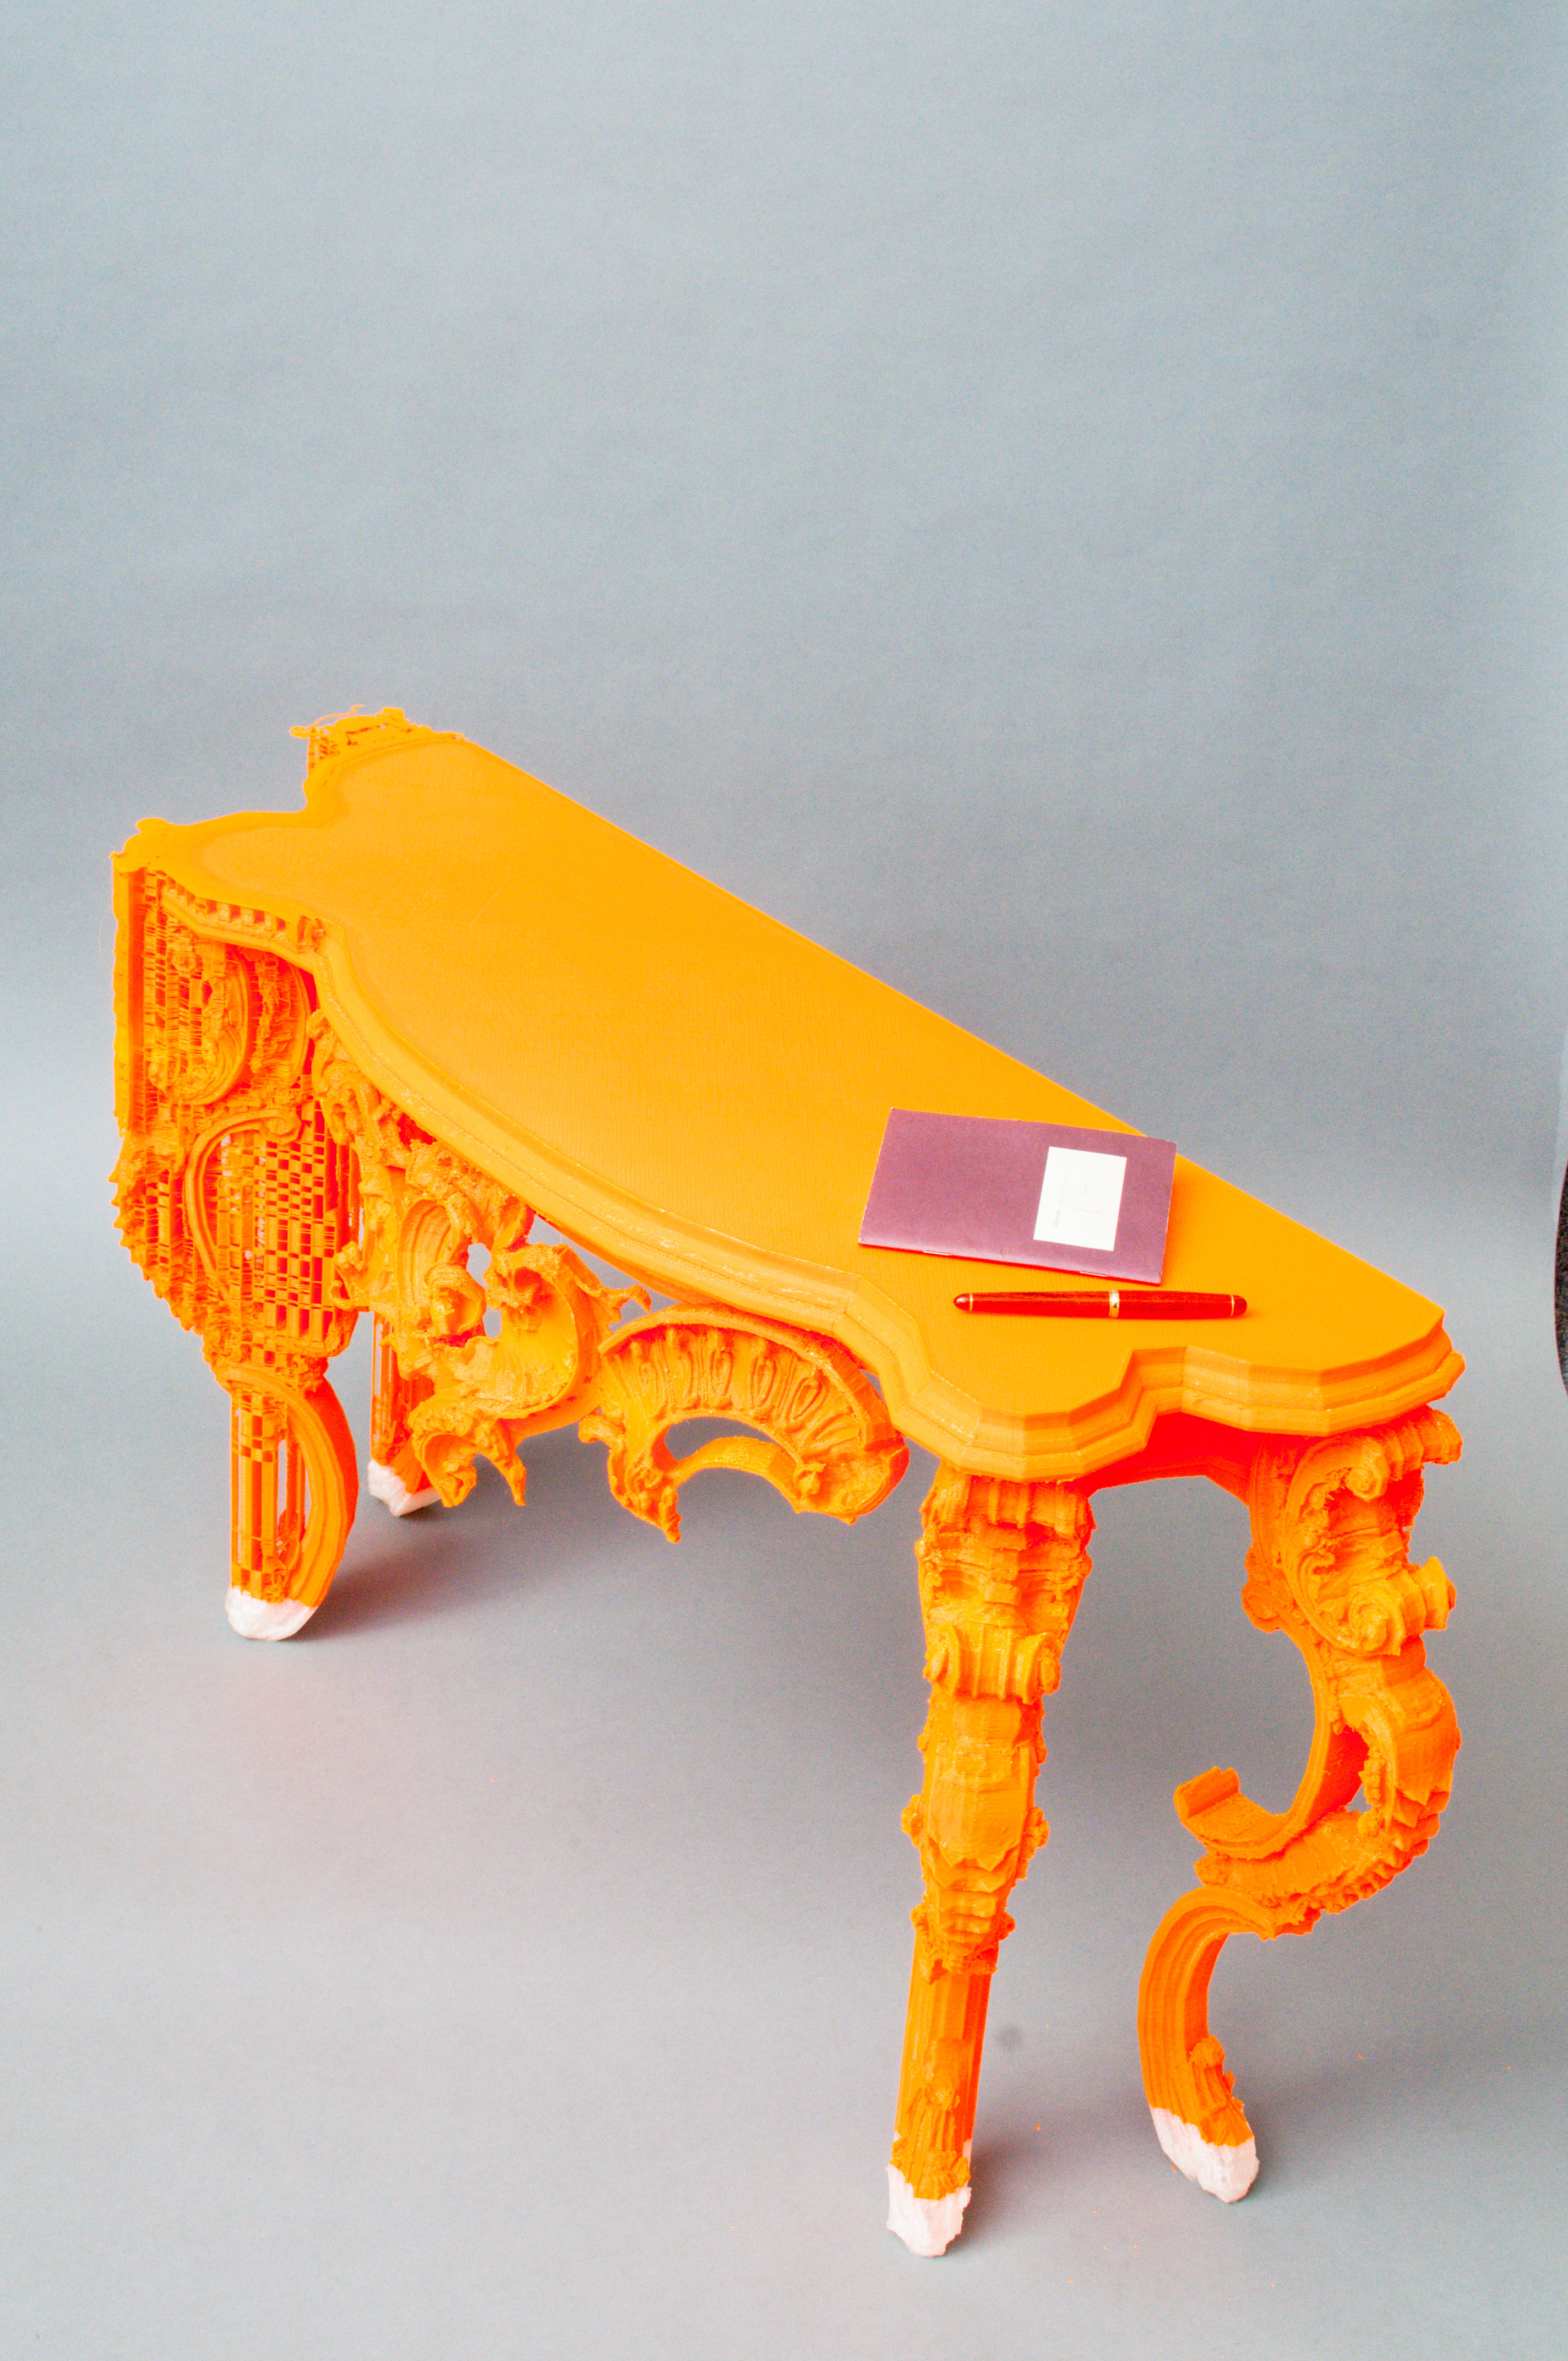 Table Designed by Exploration Architecture with BigRep Printer